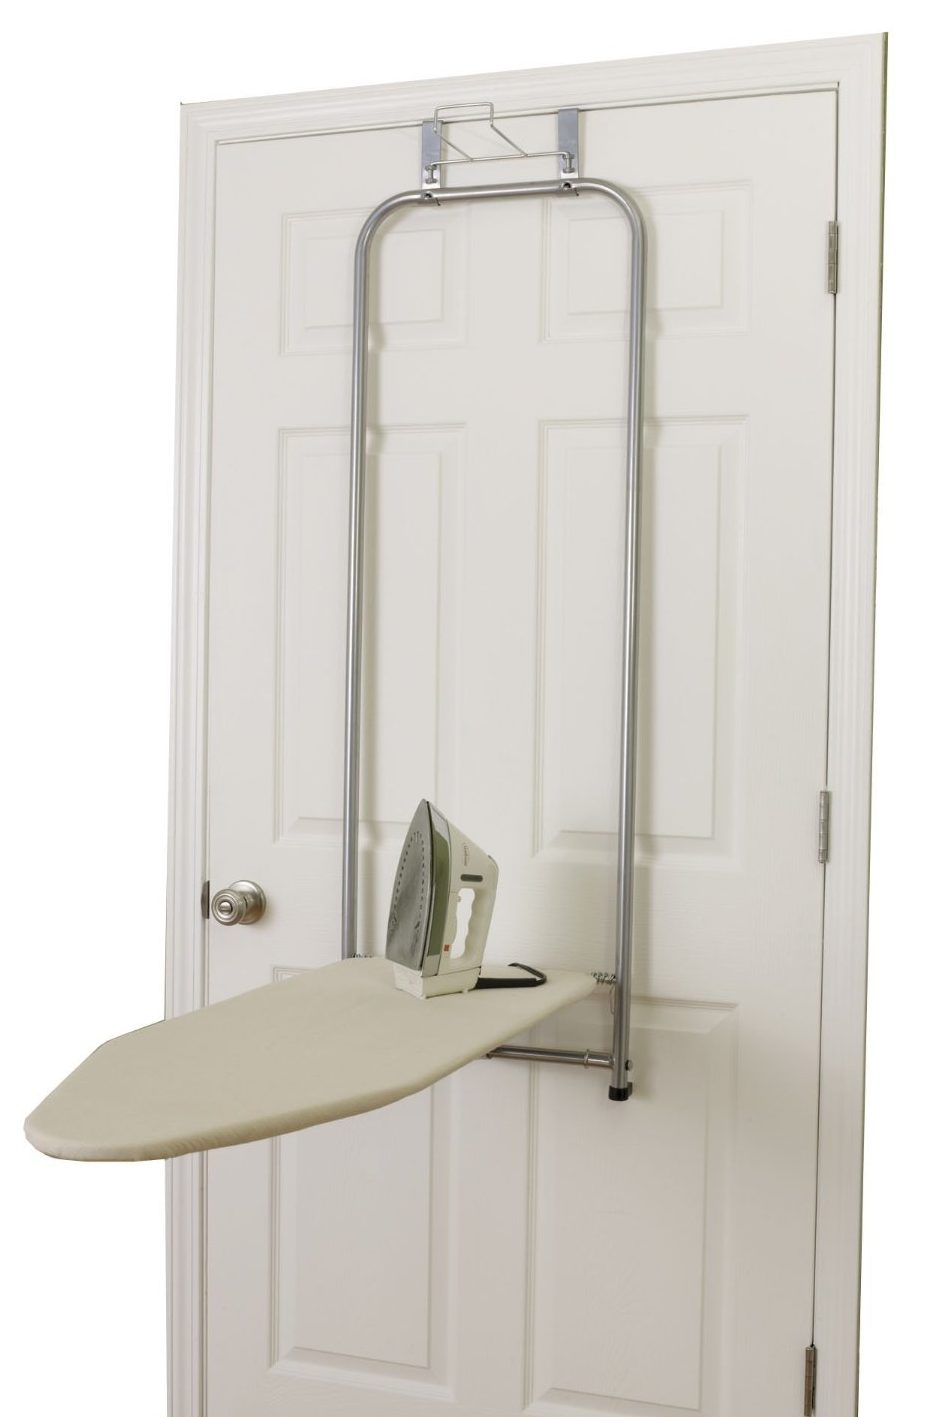 Household Essentials Oer The Door Small Ironing Board